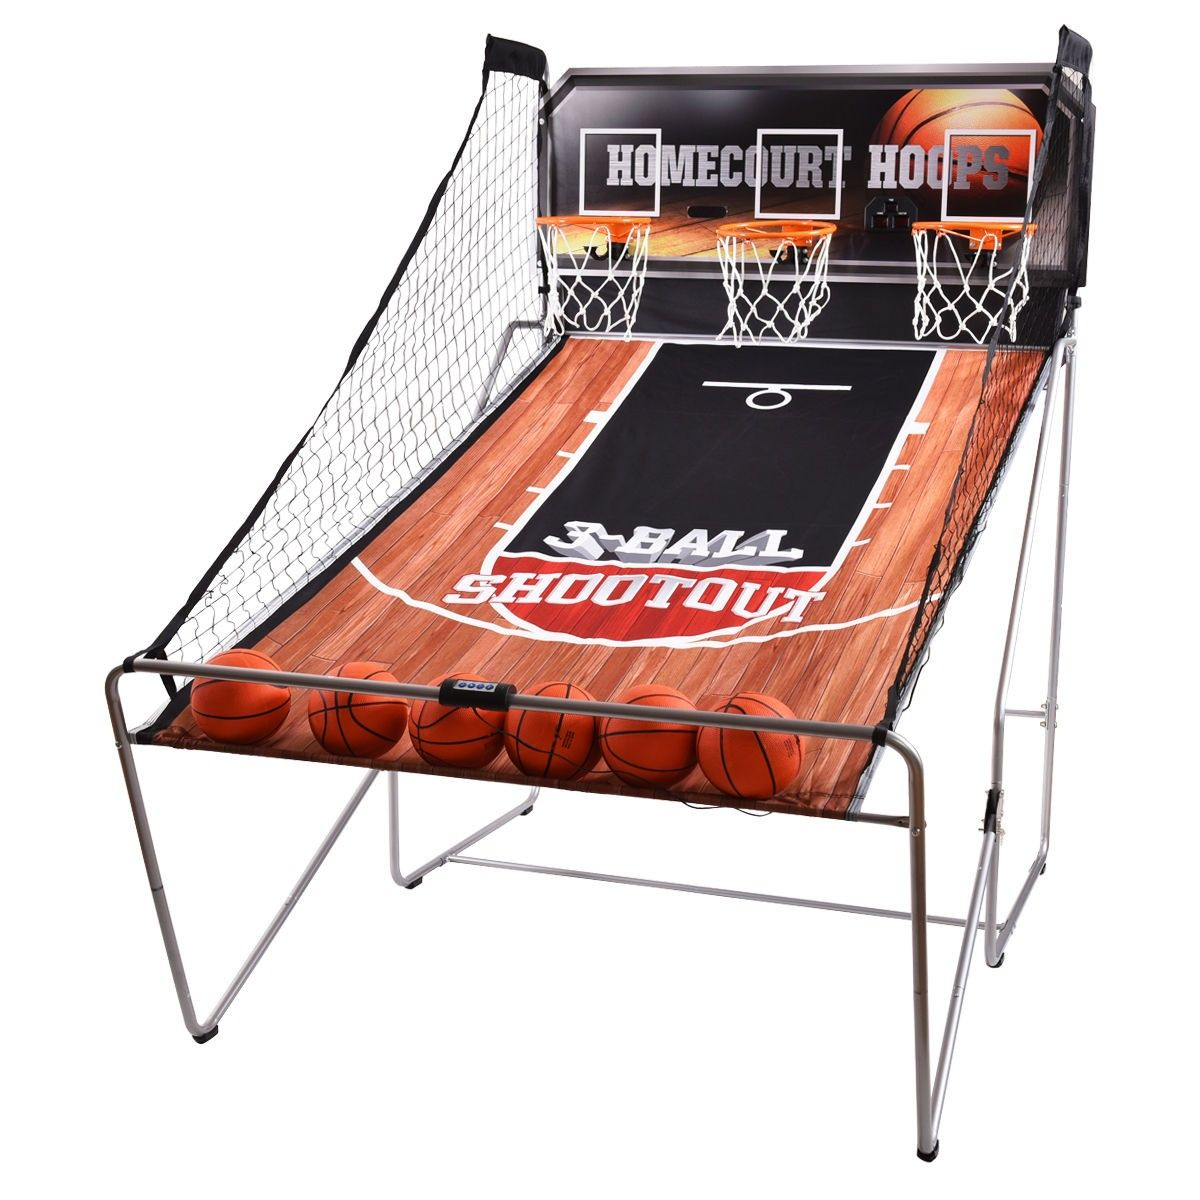 Indoor 3 Player Electronic Hoops Basketball Arcade Game Indoor Basketball Basketball Arcade Games Basketball Games For Kids